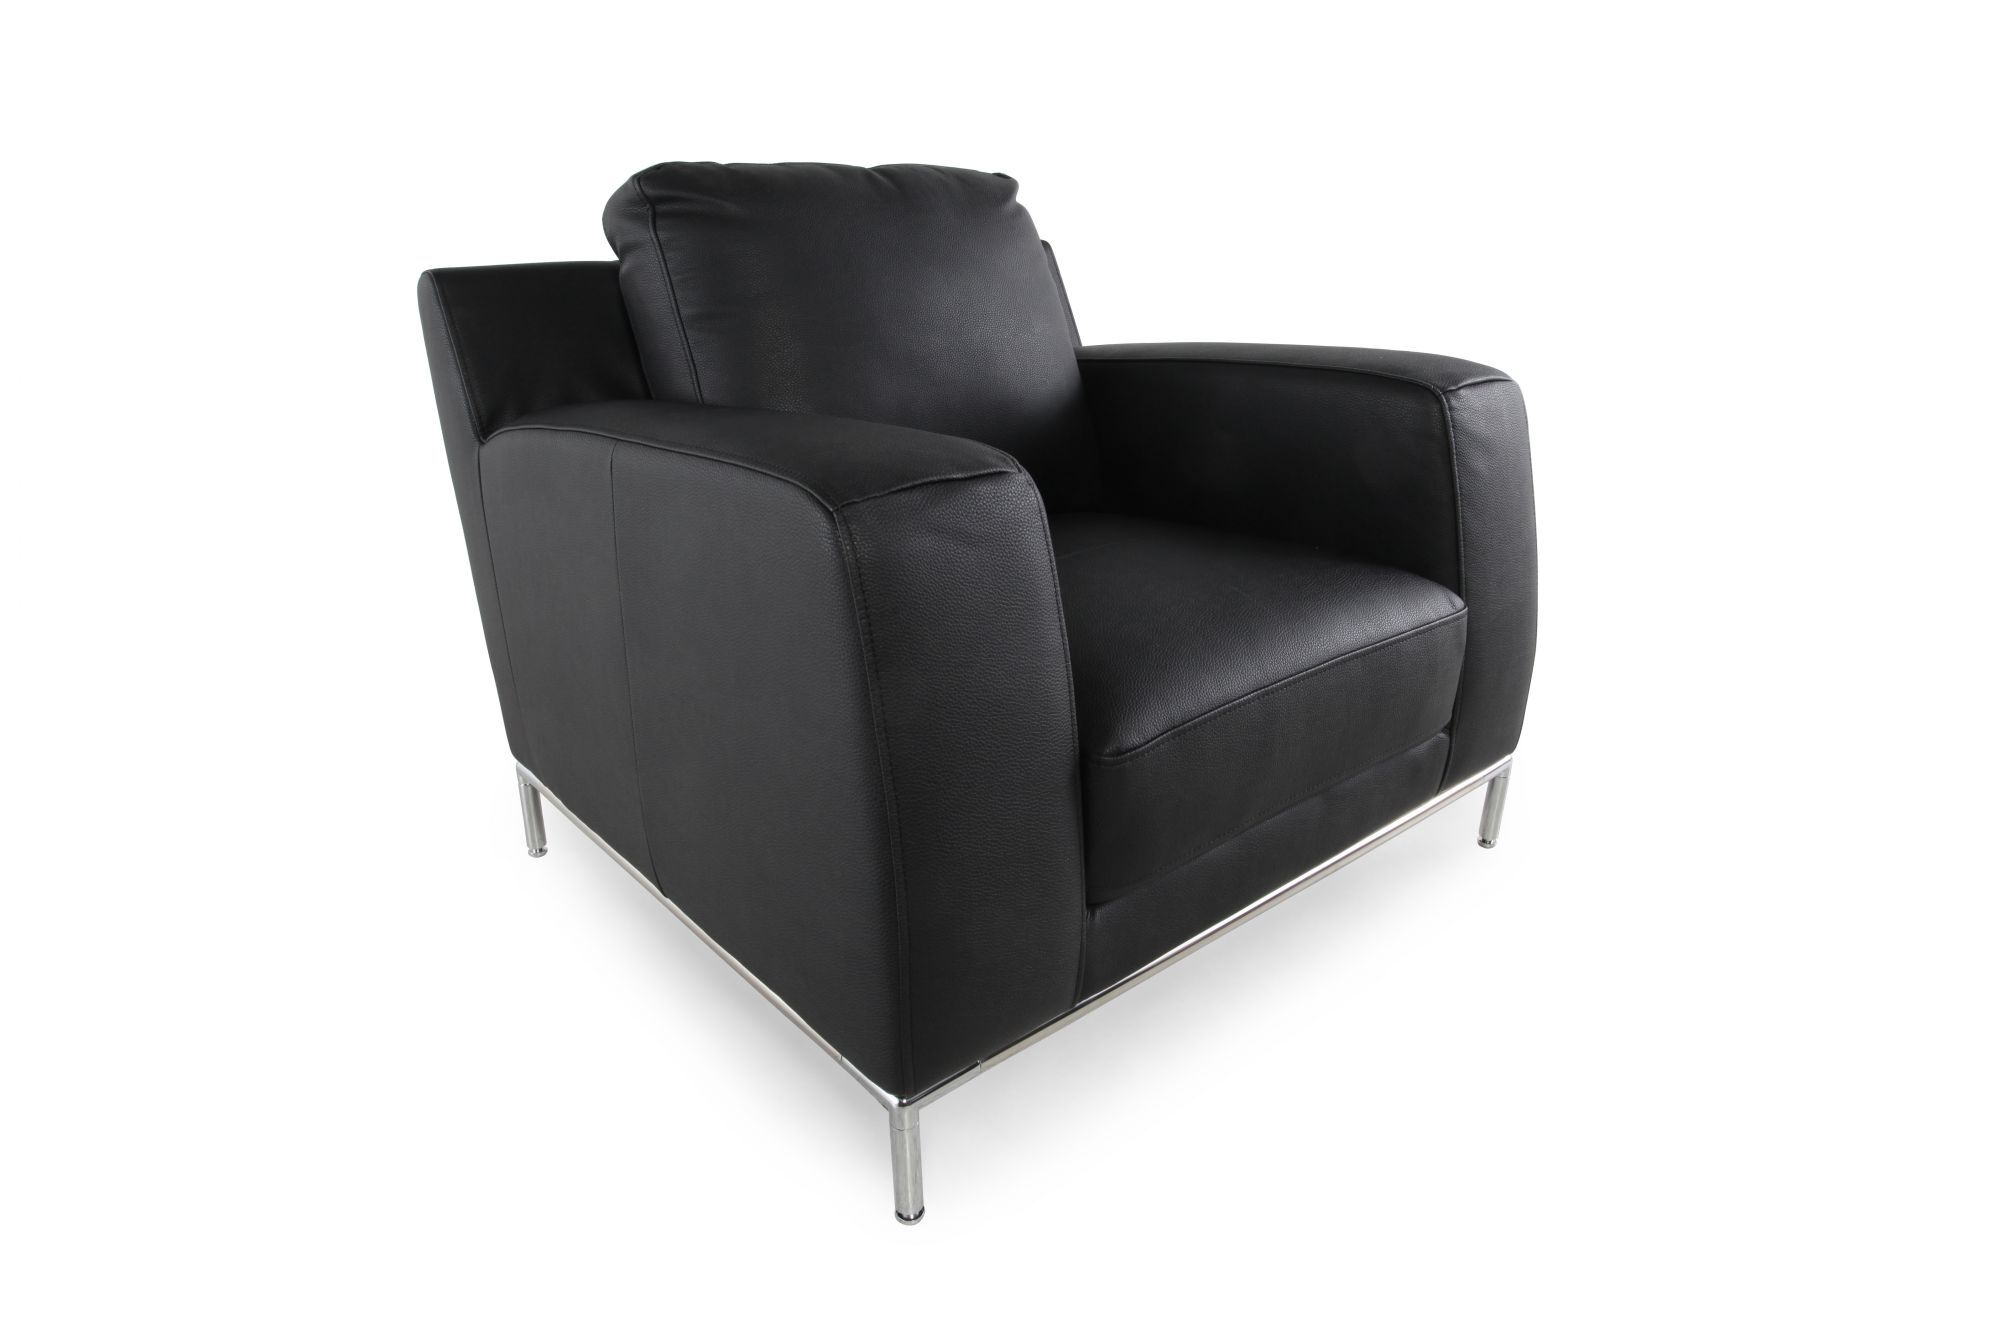 LowProfile Contemporary 40 Chair in Ebony Black  Mathis